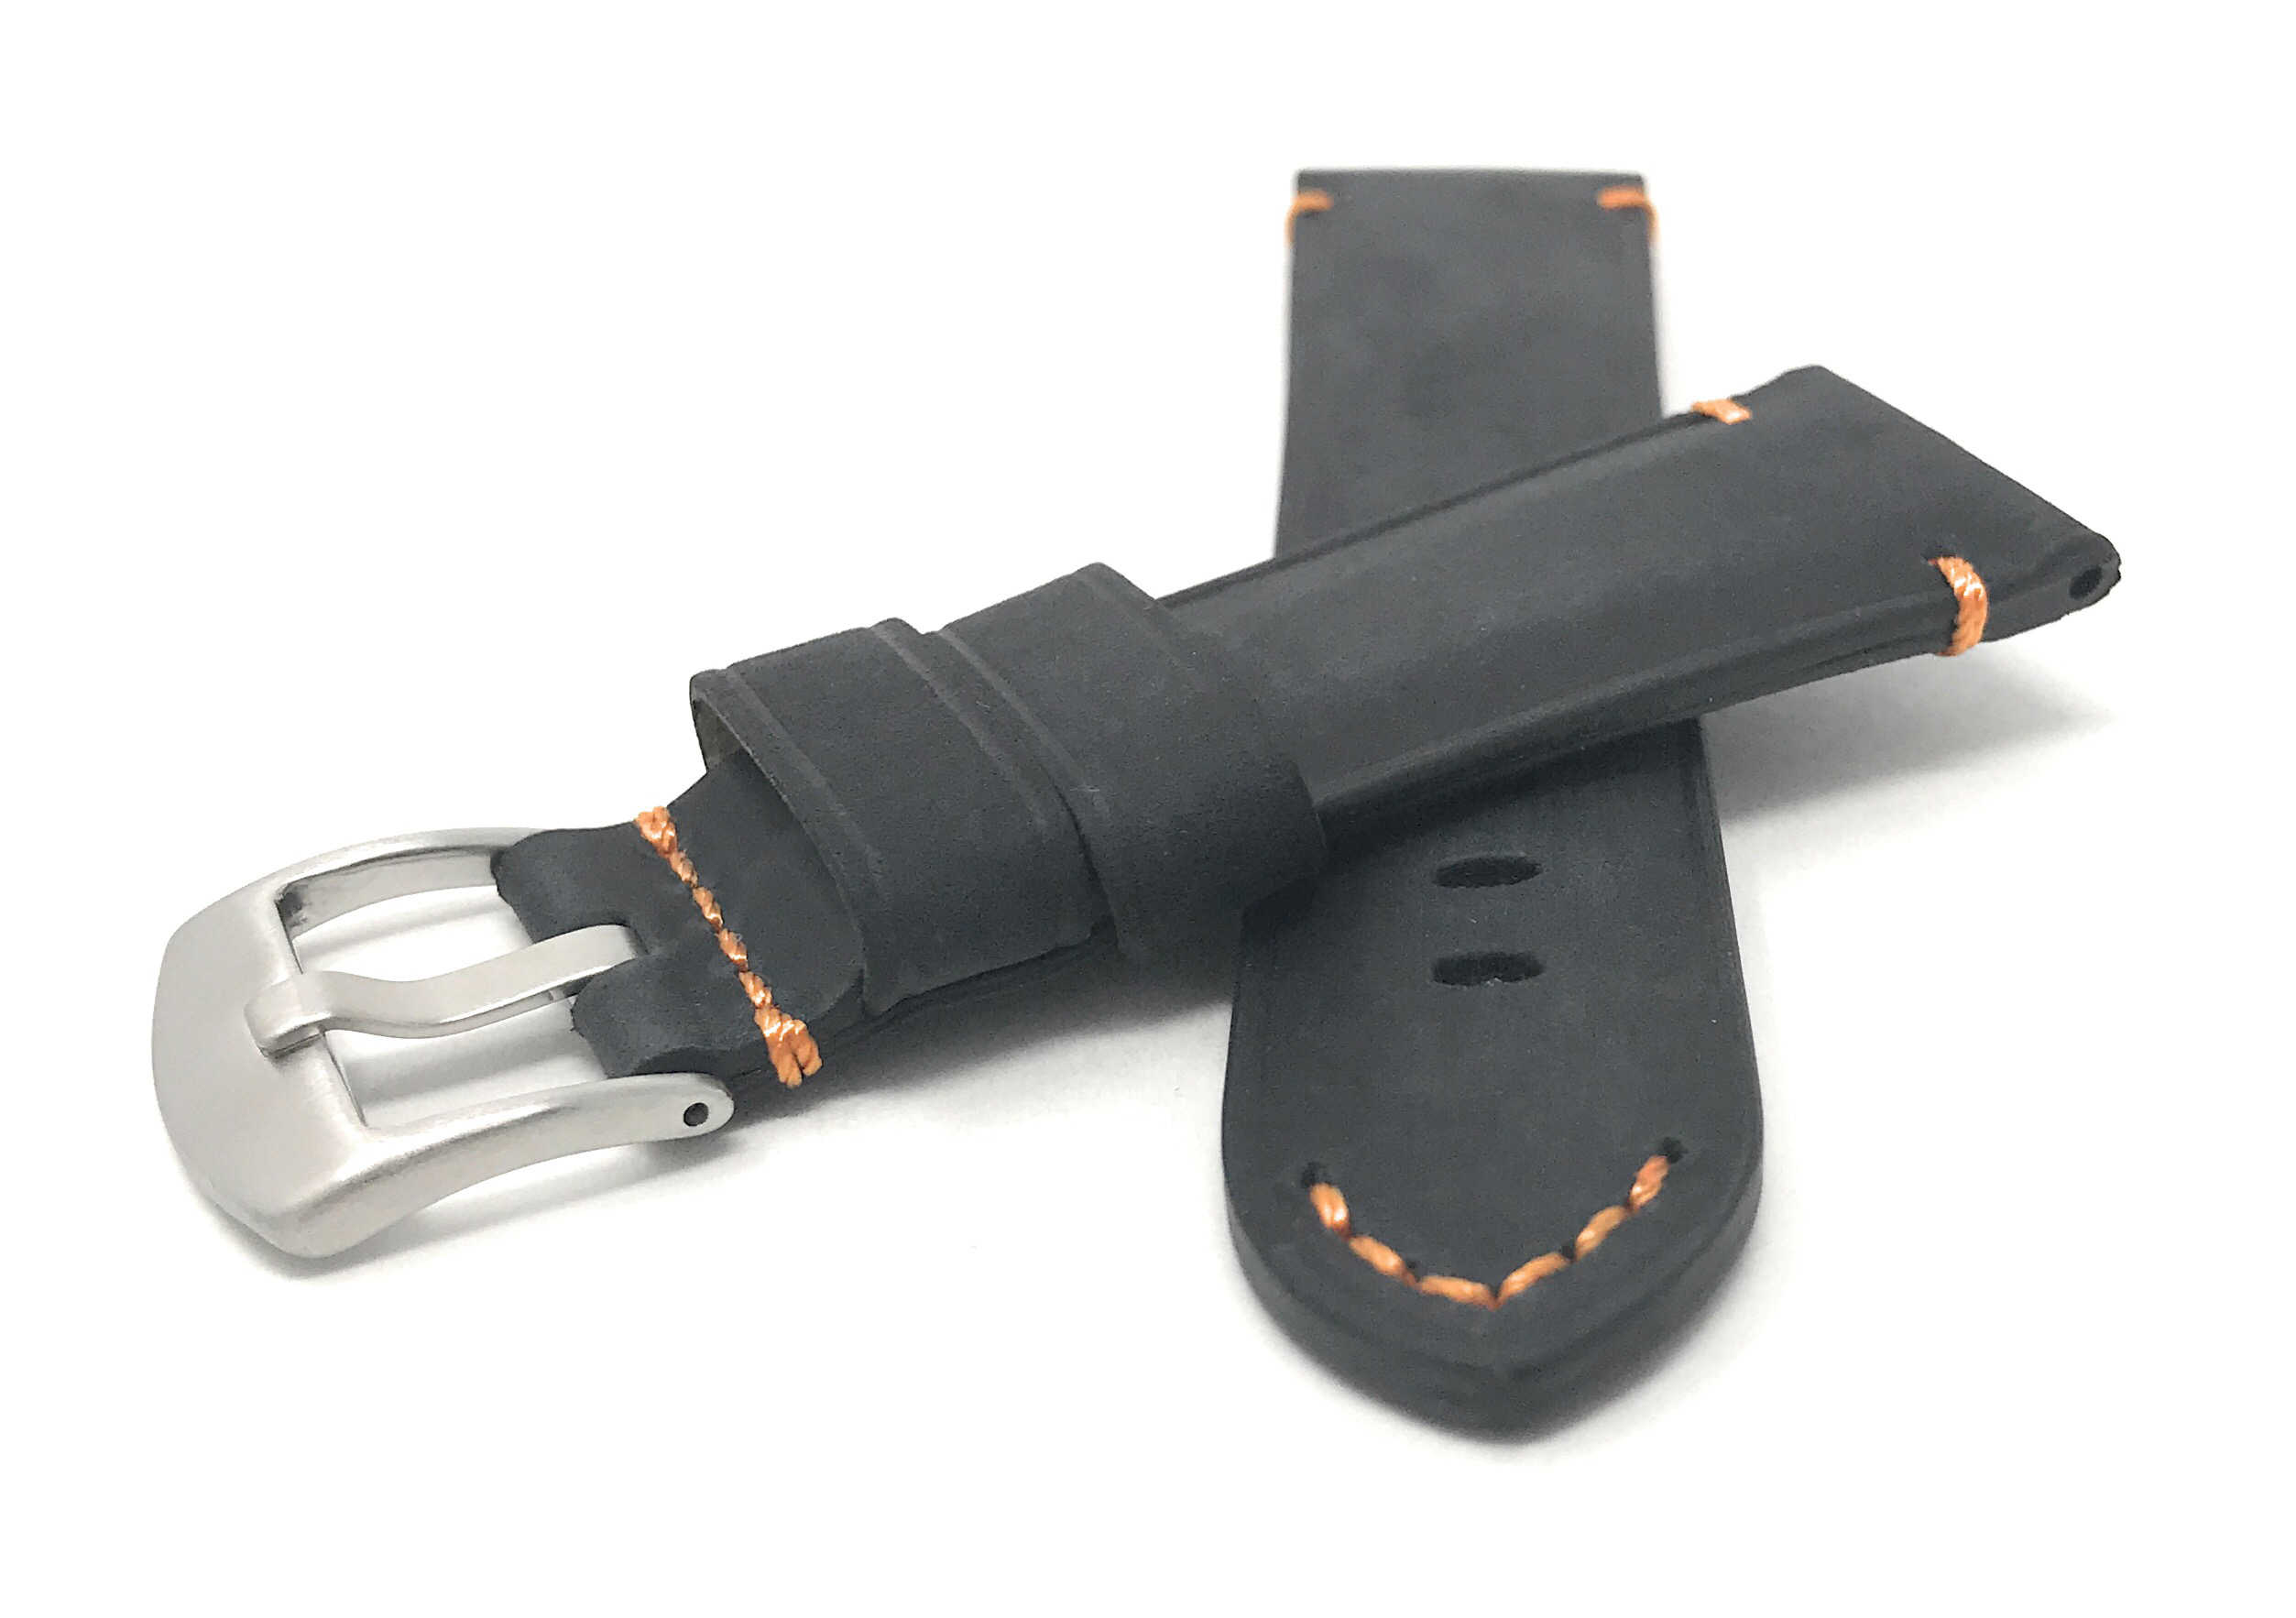 Bandini-Distressed-Leather-Watch-Band-Strap-Black-Brown-Tan-20mm-22mm-24mm thumbnail 22